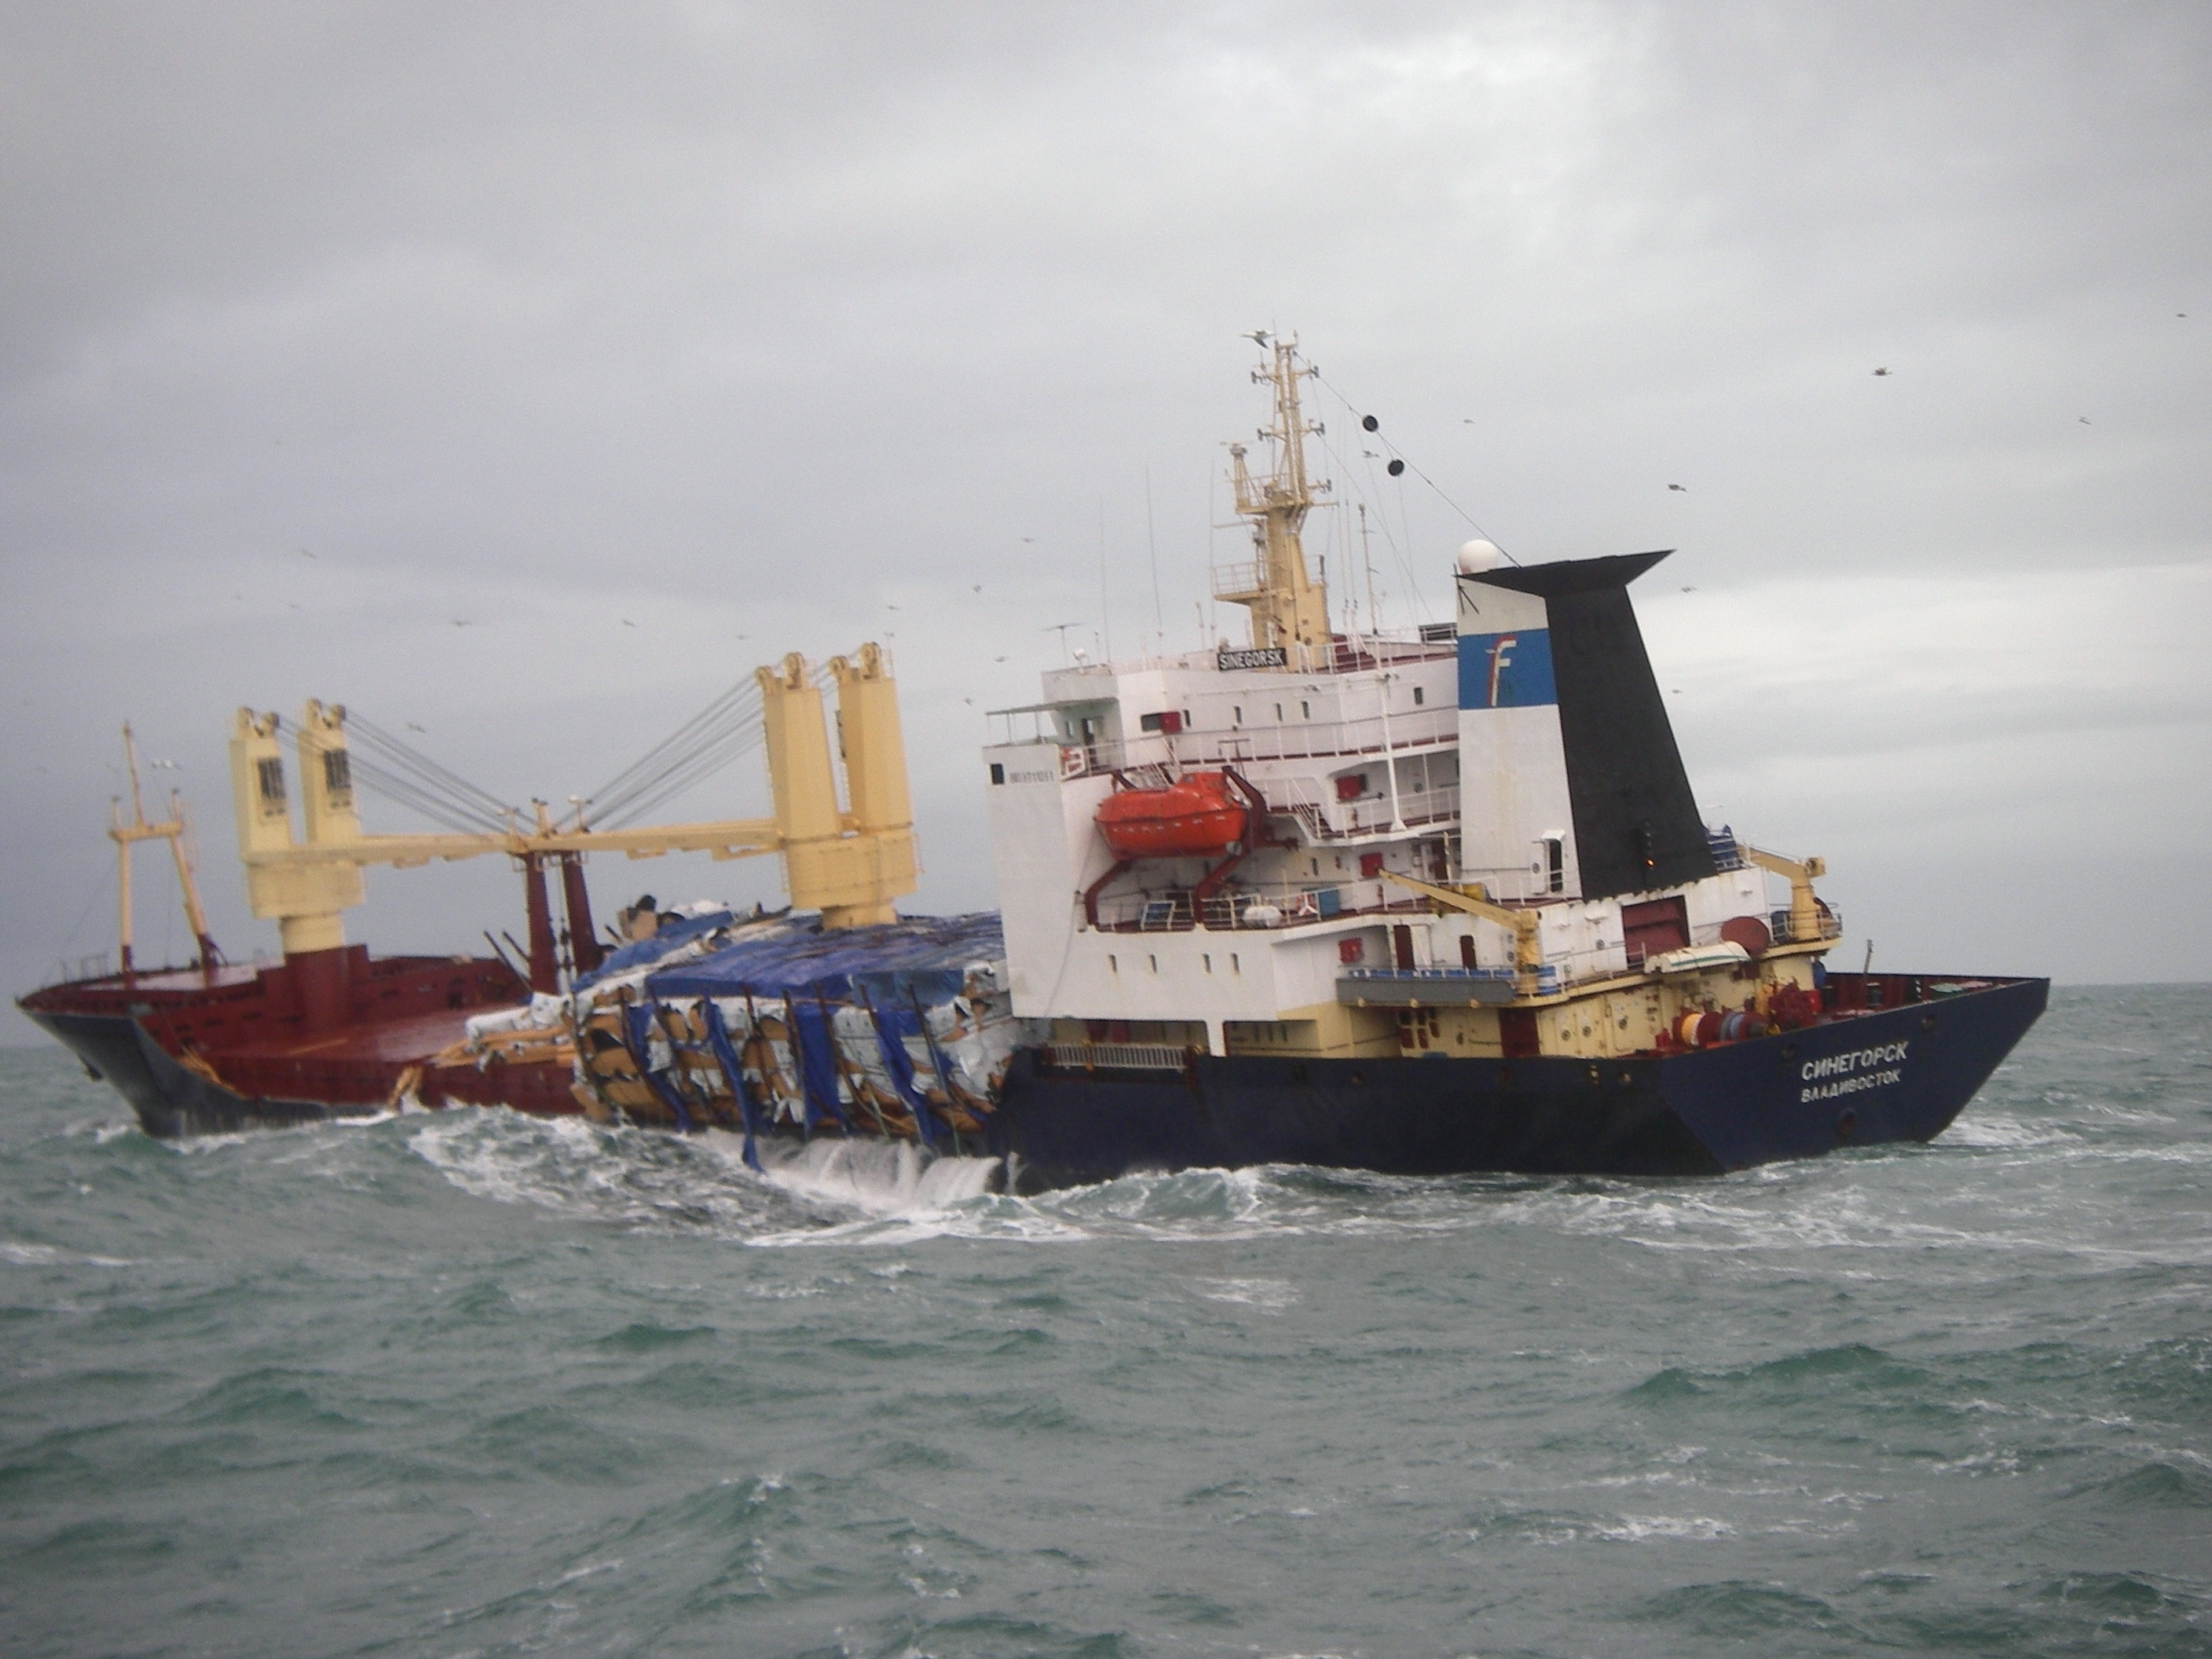 The troubled Sinegorsk in dangerous waters off the Sussex coast near Beachy Head - Picture from the Maritime & Coastguard Agency